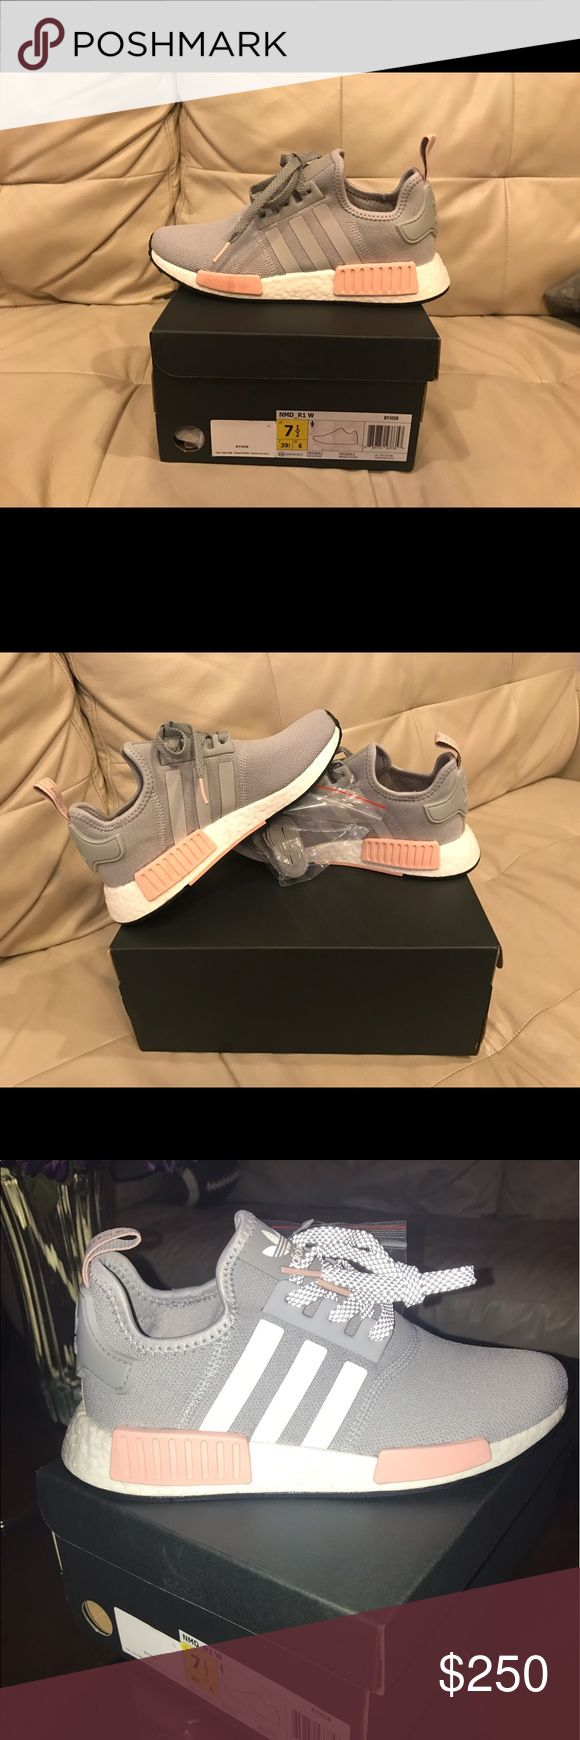 BRAND NEW Adidas ORG Women's NMD runner Adidas NMD R1 clear oinx, light oinx, vapour pink-new with tags and extra shoelaces-size 7.5. 100% authentic and in perfect condition-never worn. These shoes run big so you may want to get a half size or full size down from your regular size! PRICE NEGOTIABLE! adidas Shoes Athletic Shoes